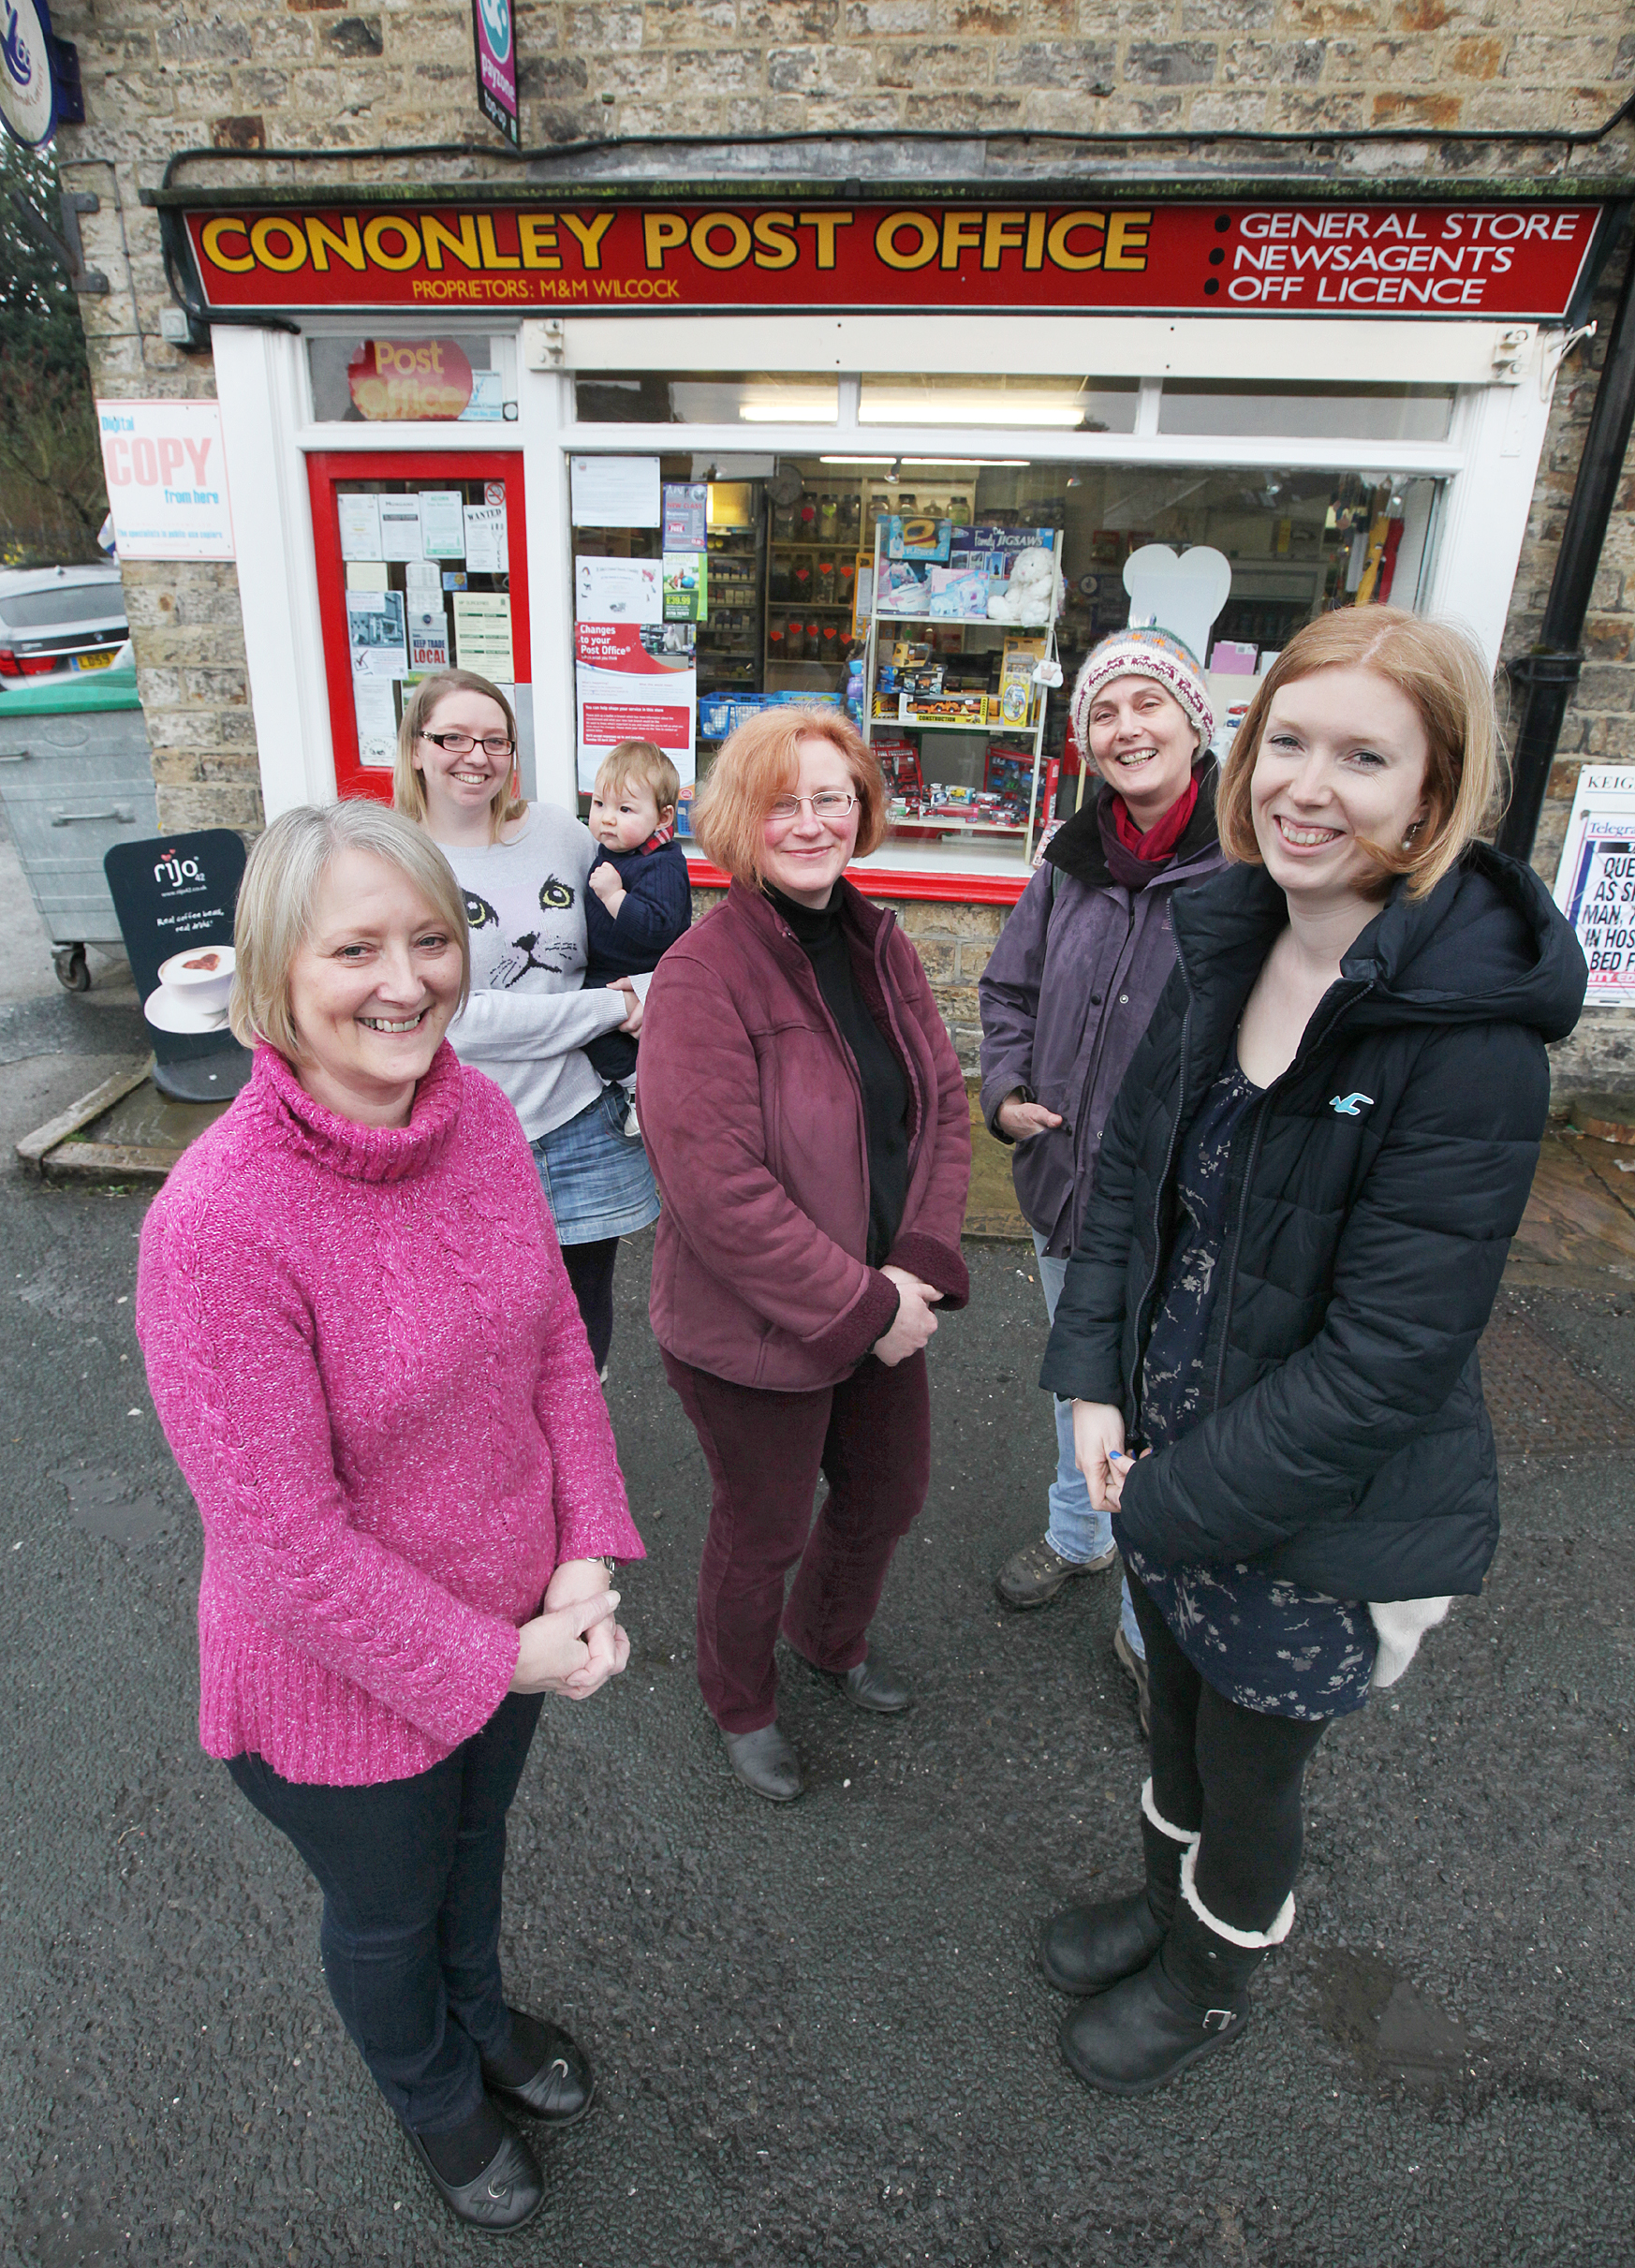 Campaigning to turn the Post Office into a community run facility are, from the left, Marion Wilcock, Vikki Wilcock, Stephanie